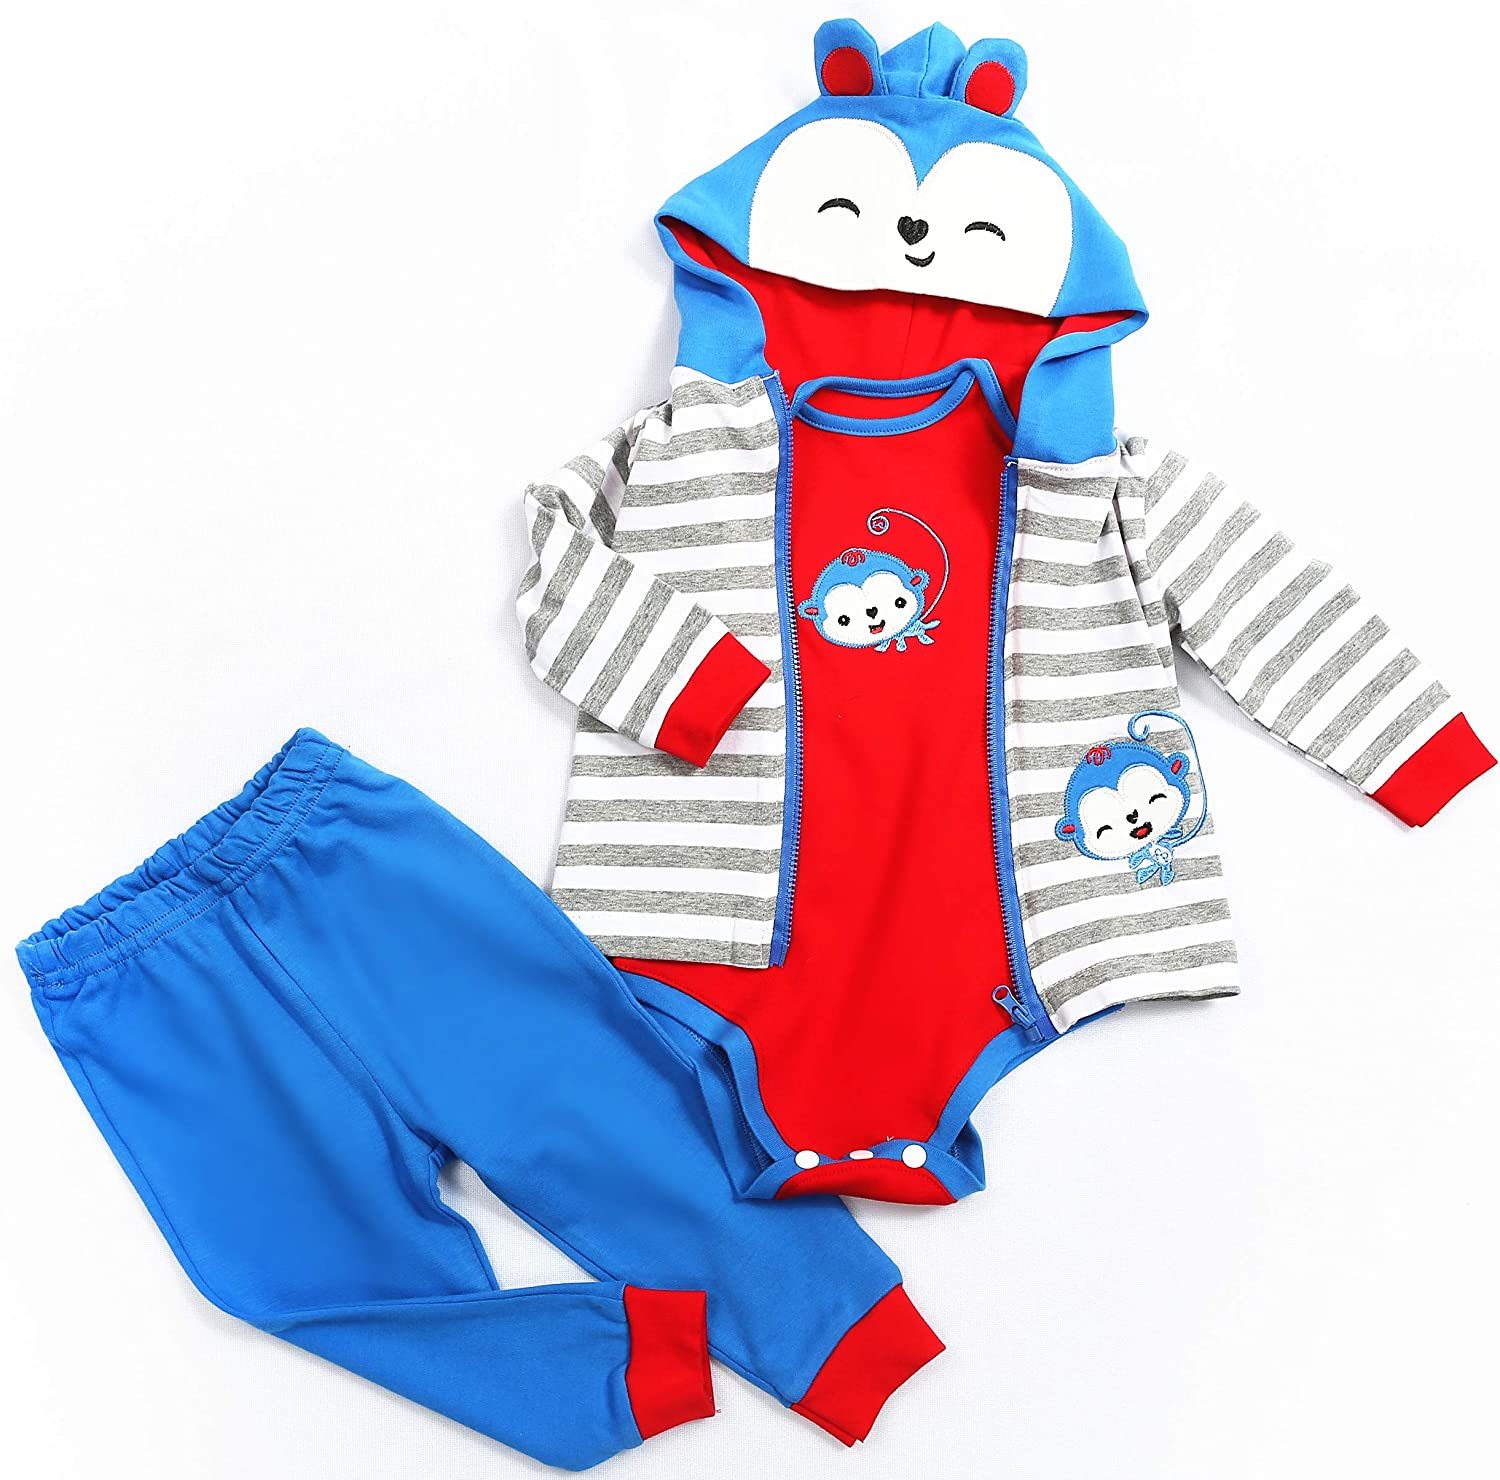 Dolls Accessories 18 Inch  Doll T-shirt For Kids Gifts EP